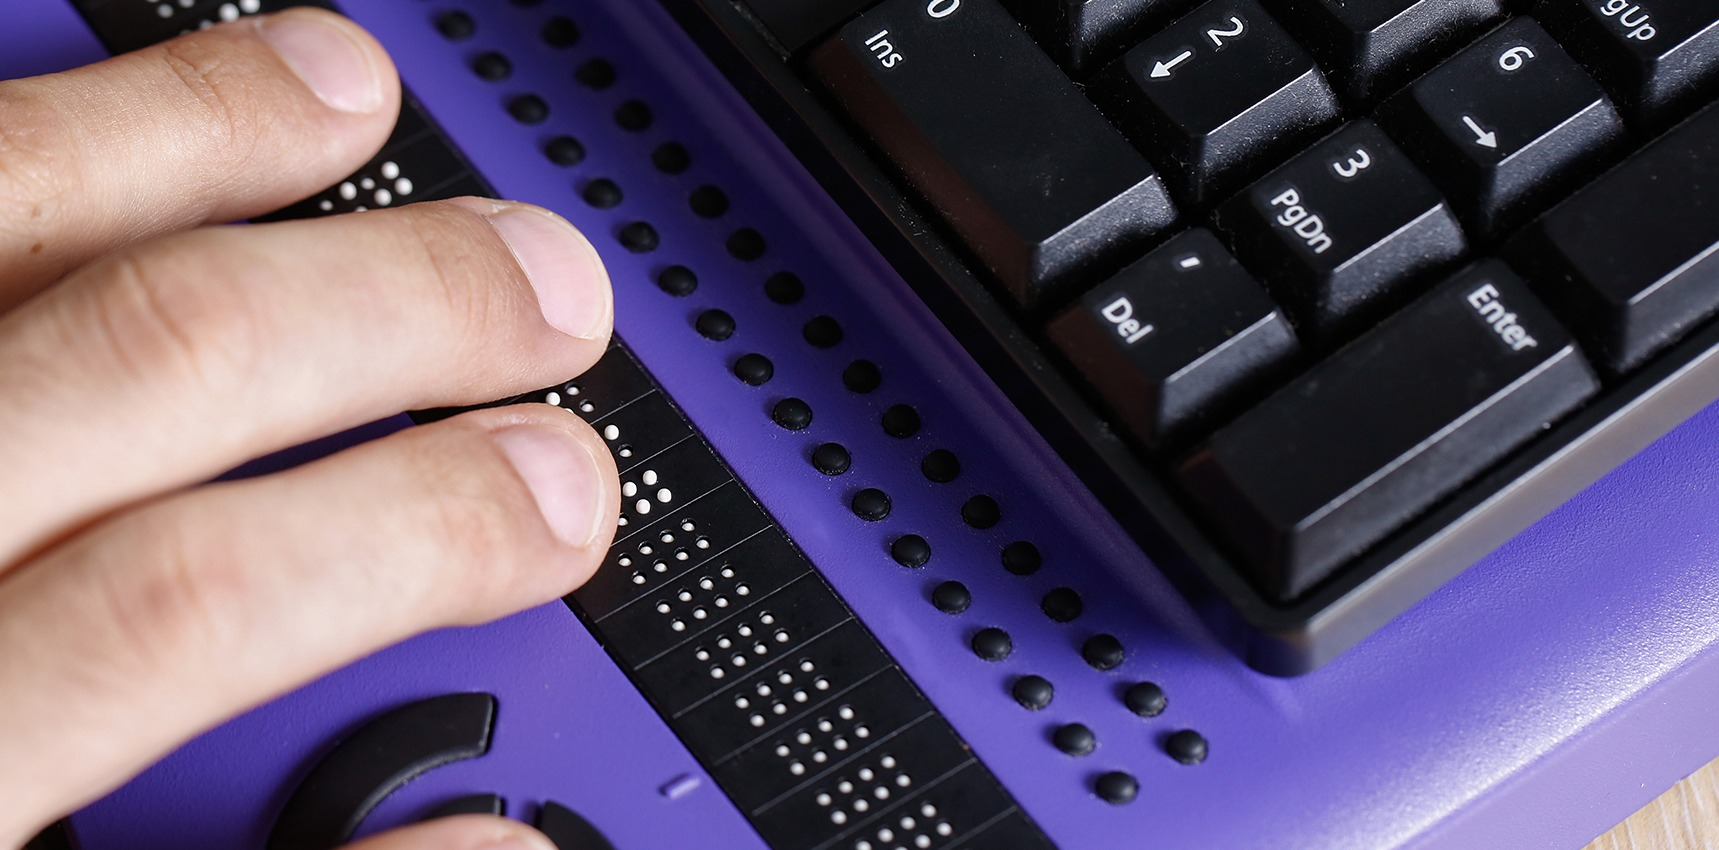 Close up of hands using a braille computer keyboard.